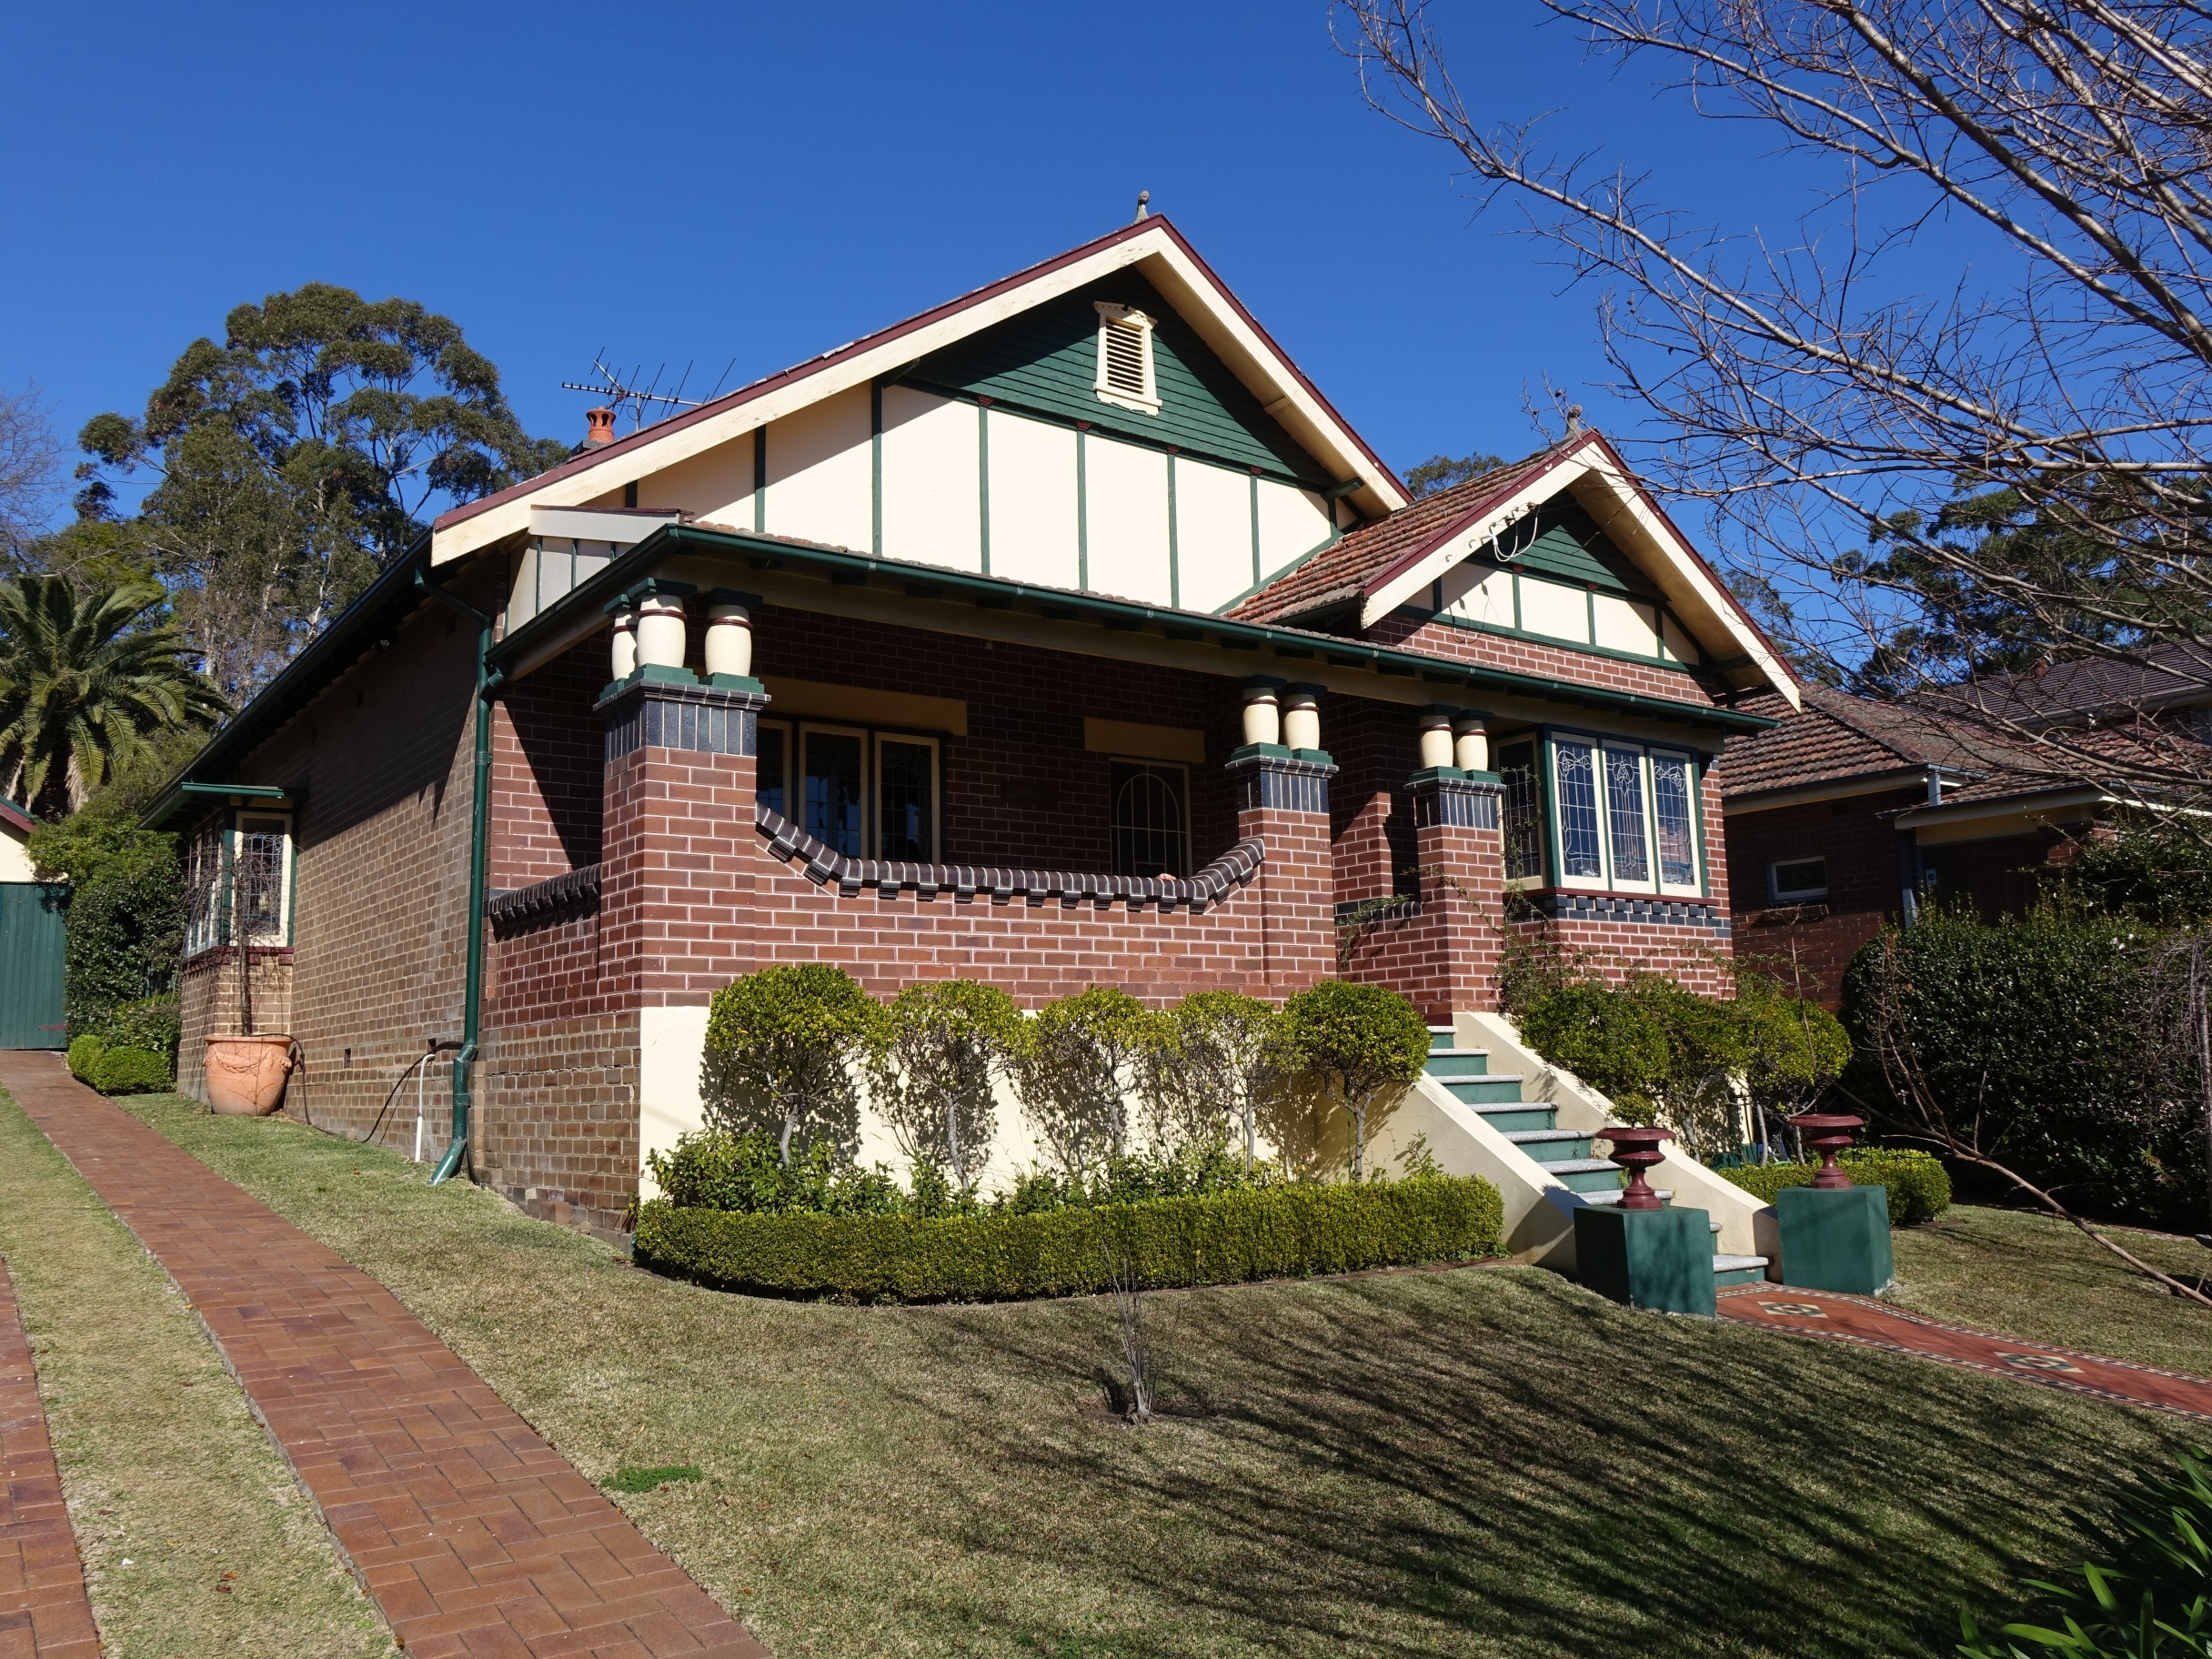 Federation building reports sydney bungalow building for 1900 architecture houses